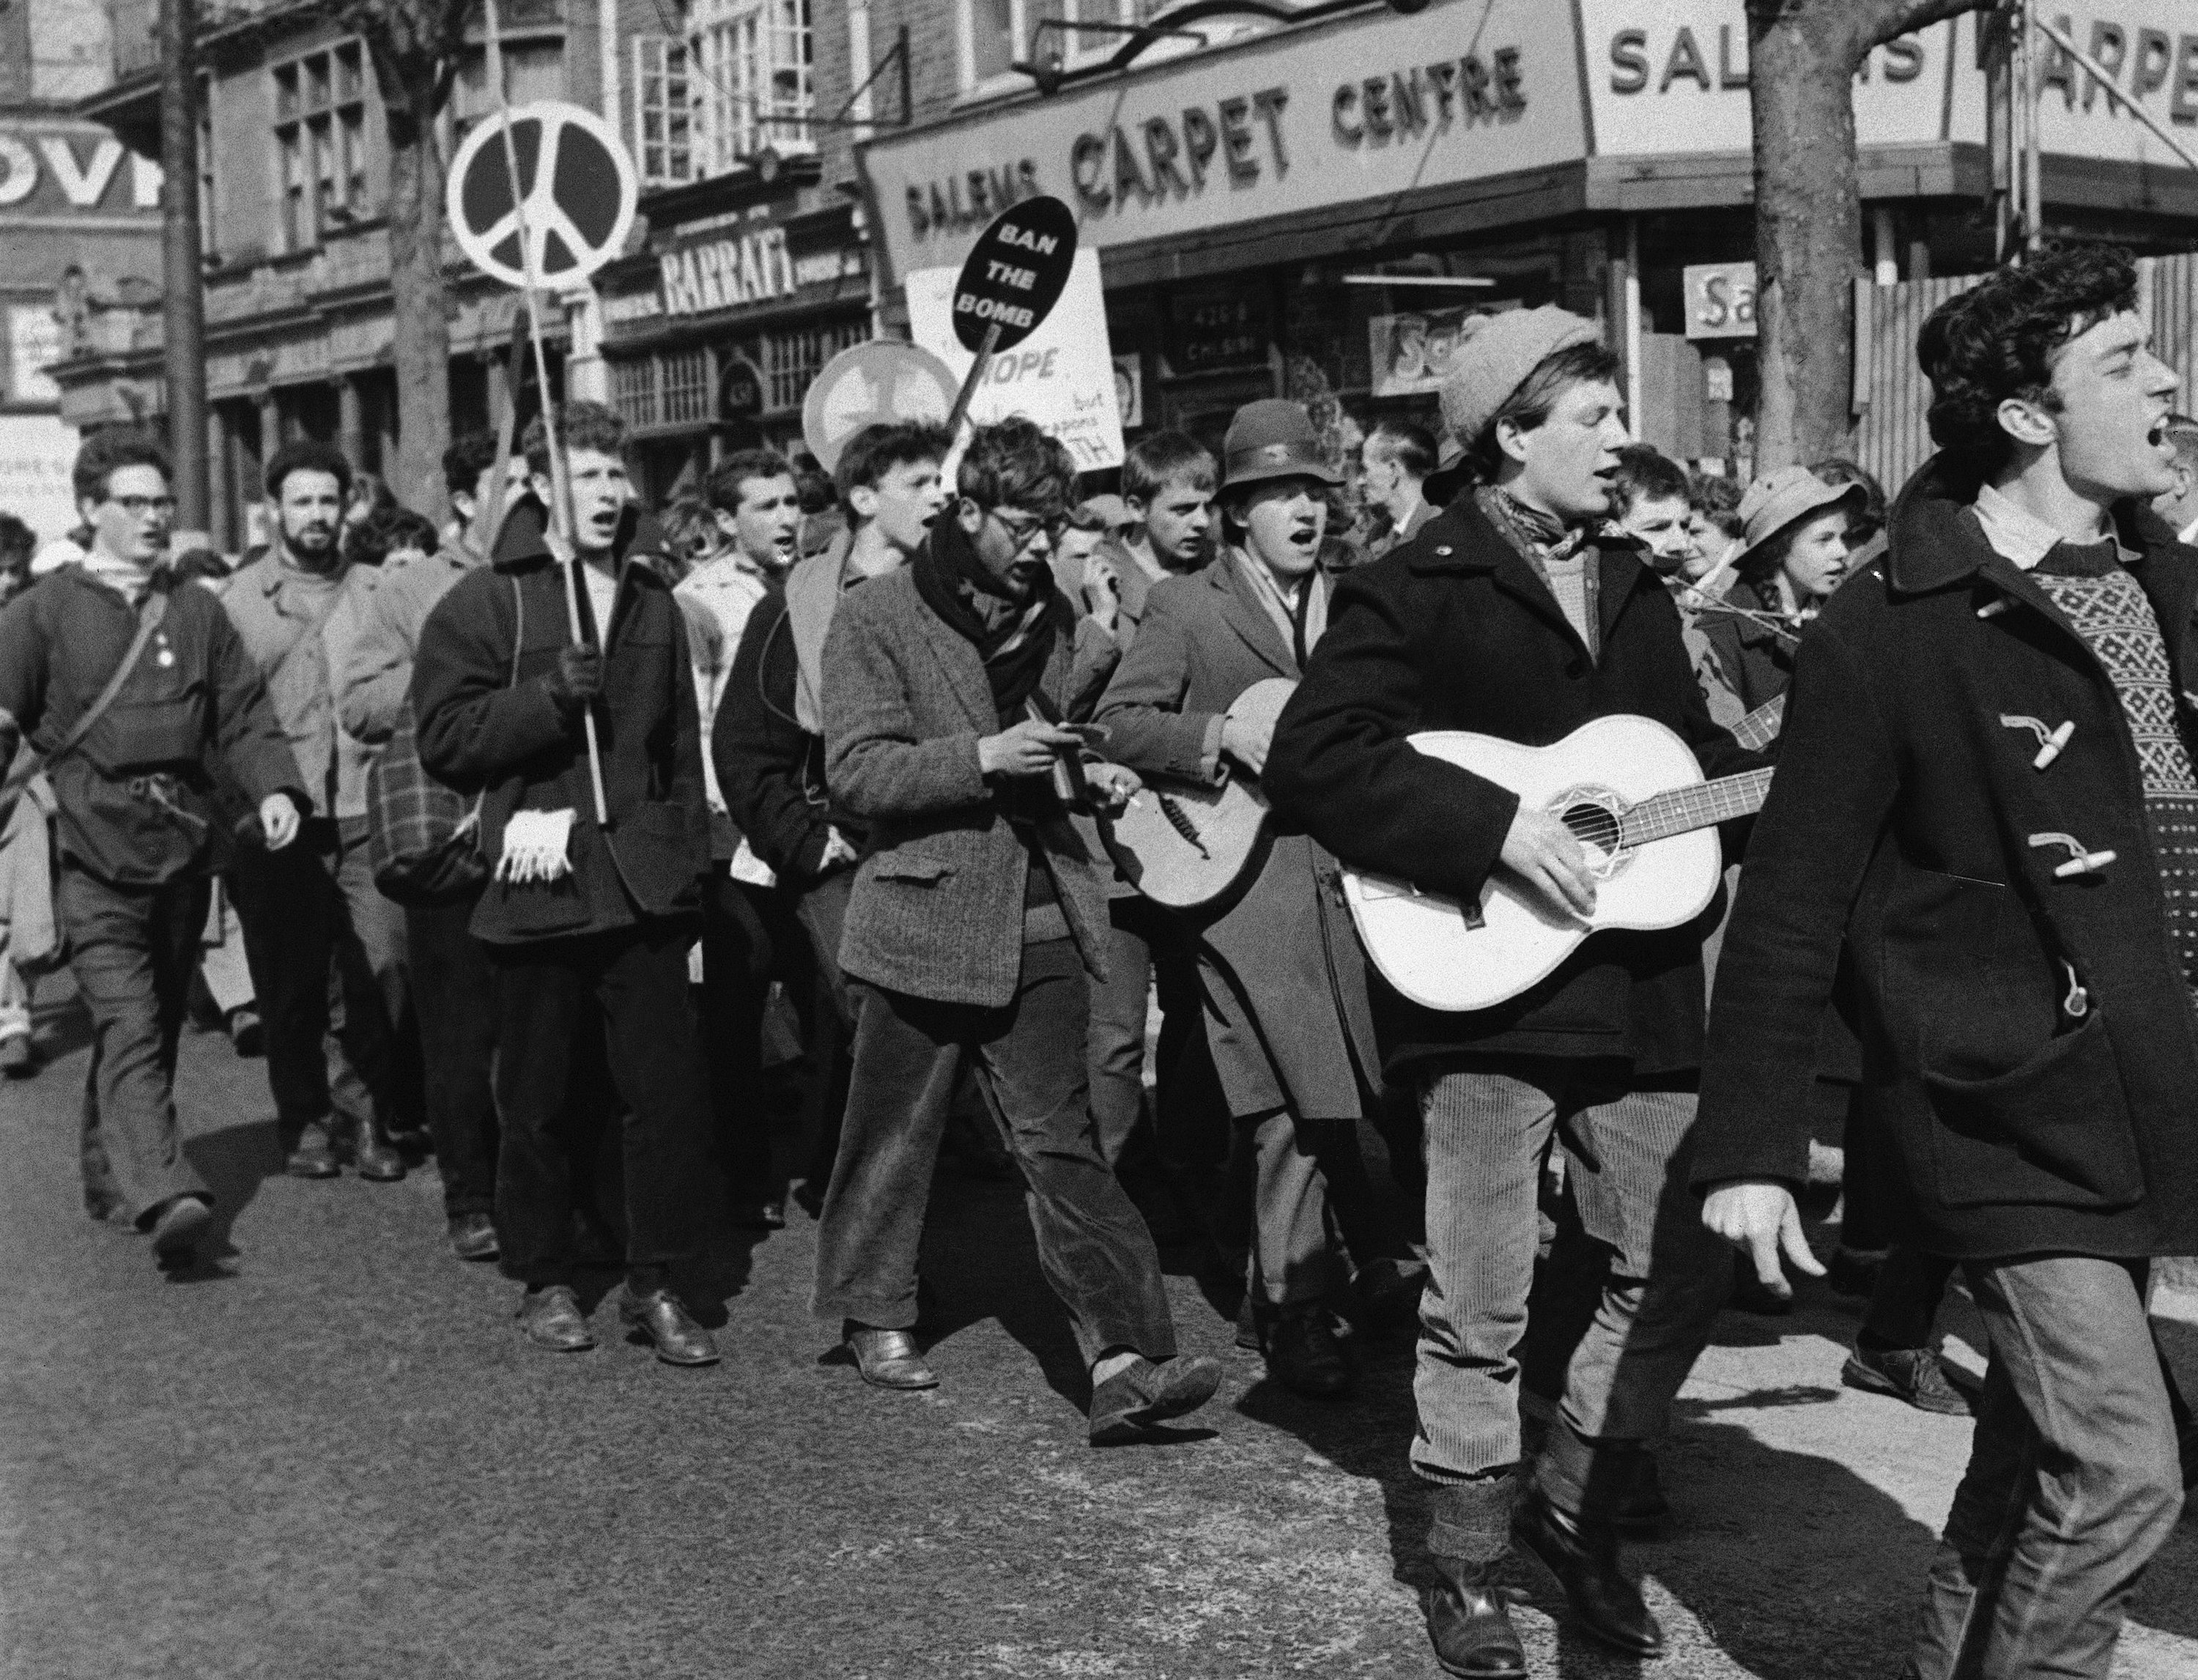 On April 18, 1960 a 20,000 strong procession of anti H bomb demonstrators protest against the manufacture of nuclear weapons. The procession is heading for Trafalgar Square London, where huge anti bomb rally is scheduled. (AP Photo)